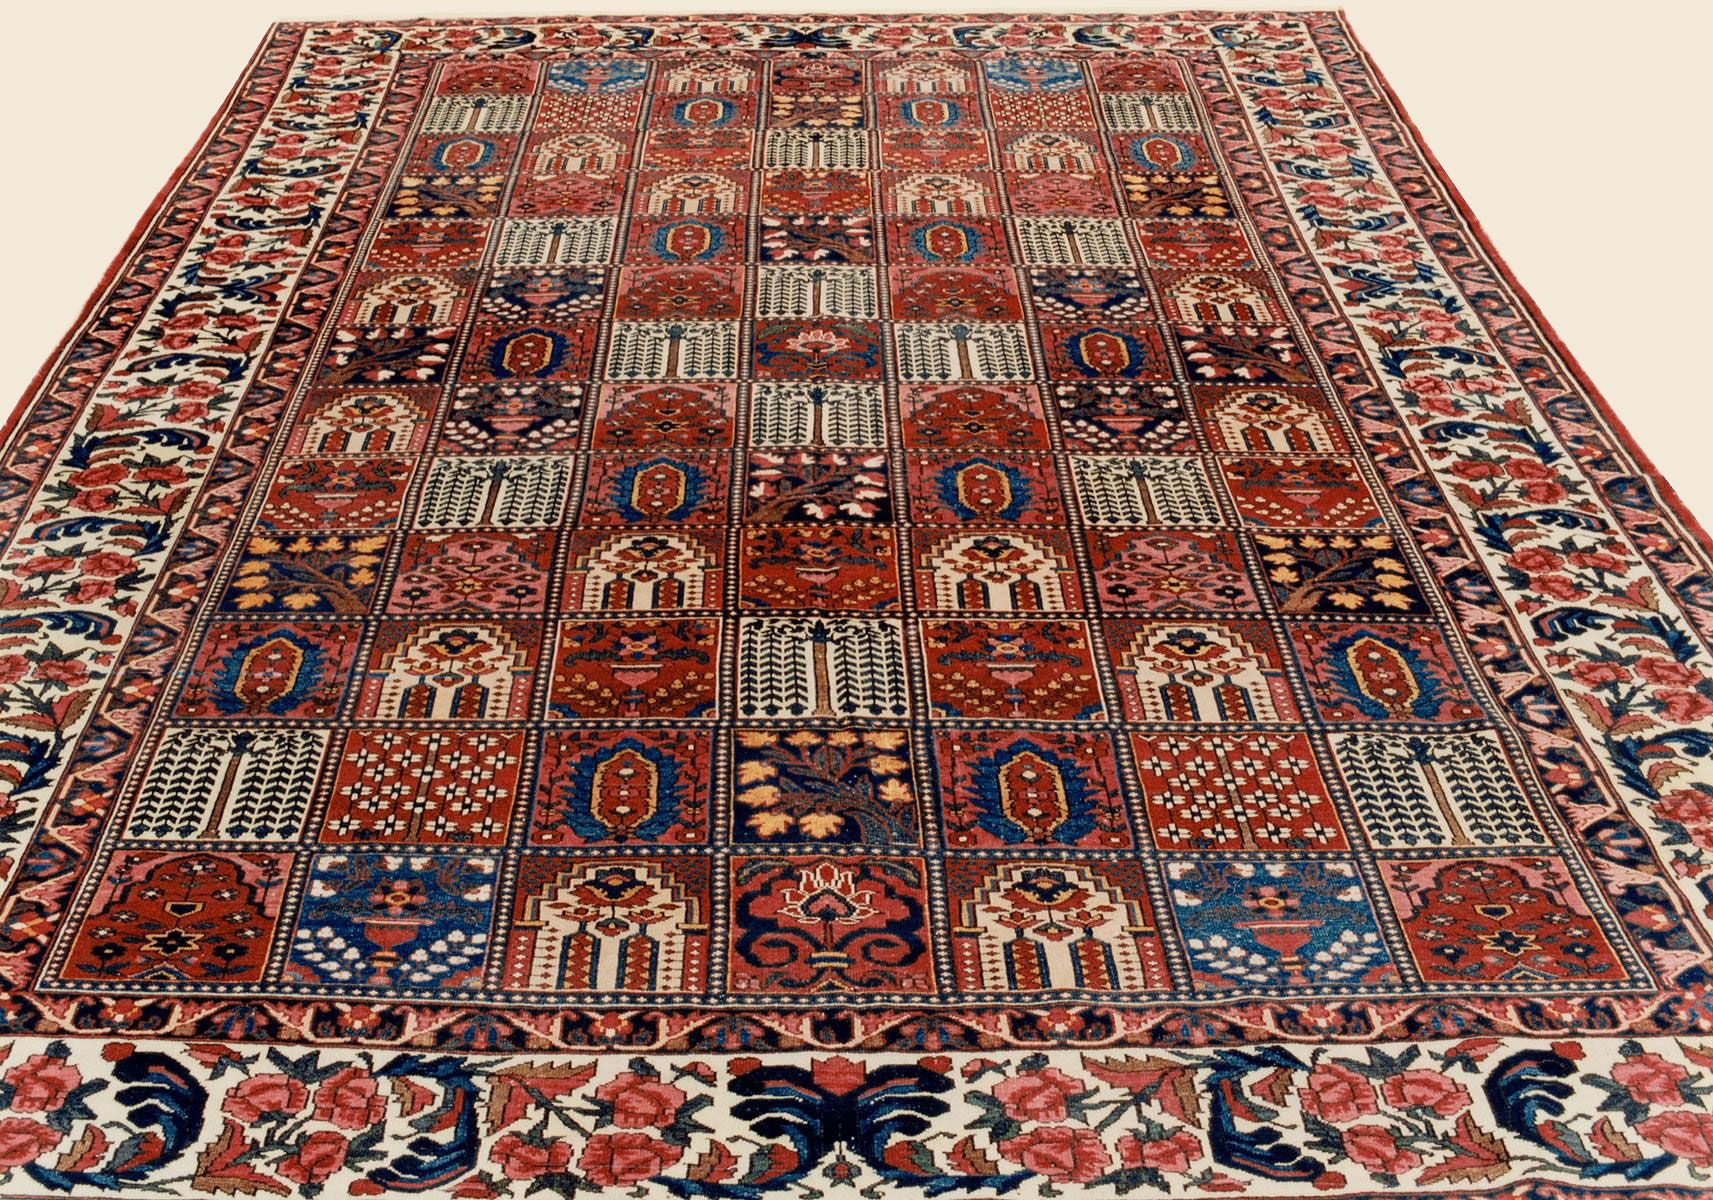 Bakhtiari 11 0 X 15 4 Circa 1910 Price 20 000 Central Persian Antique Rug Claremont Rug Company Rugs Claremont Rug Company Oriental Persian Rugs